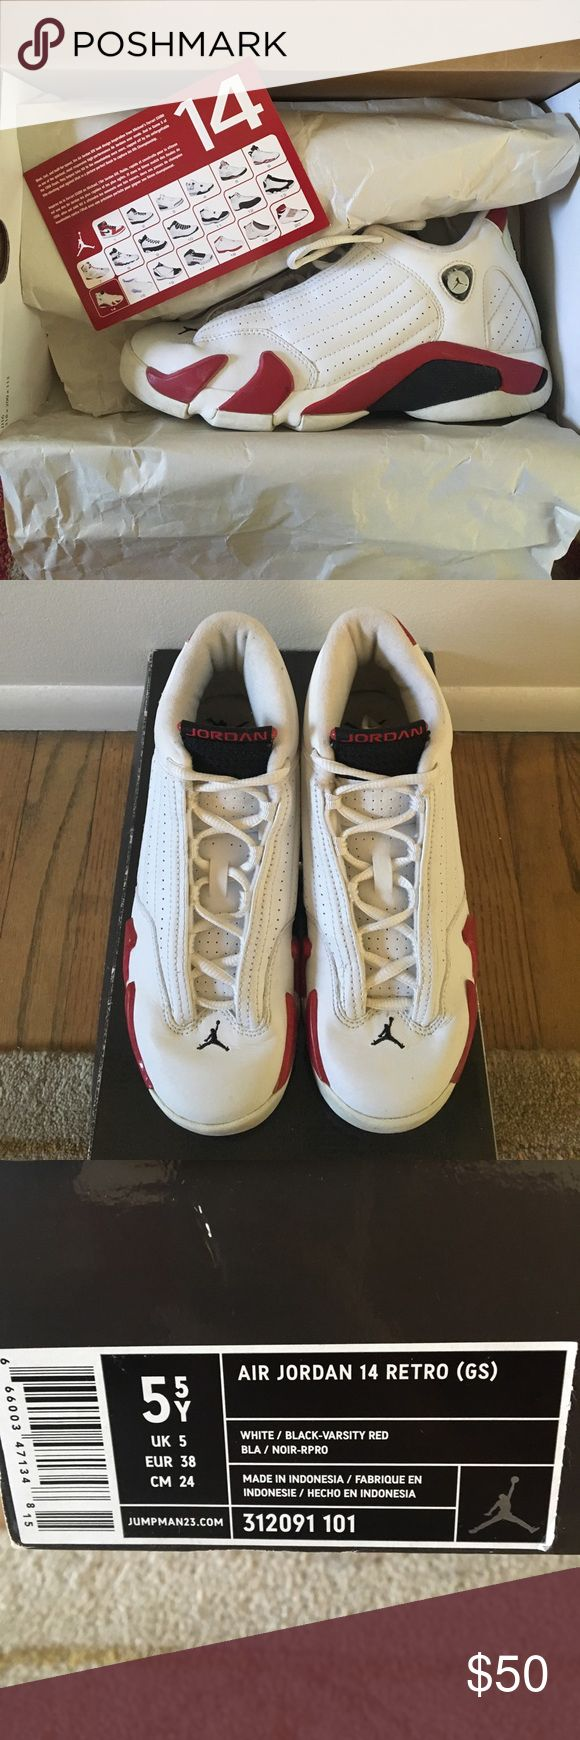 Air Jordan Retro 14s (USED) USED. Size 5Y / women 7 (USA). In good condition. Minor scuffs & creased. Laced have been bleached & washed Nike Shoes Sneakers